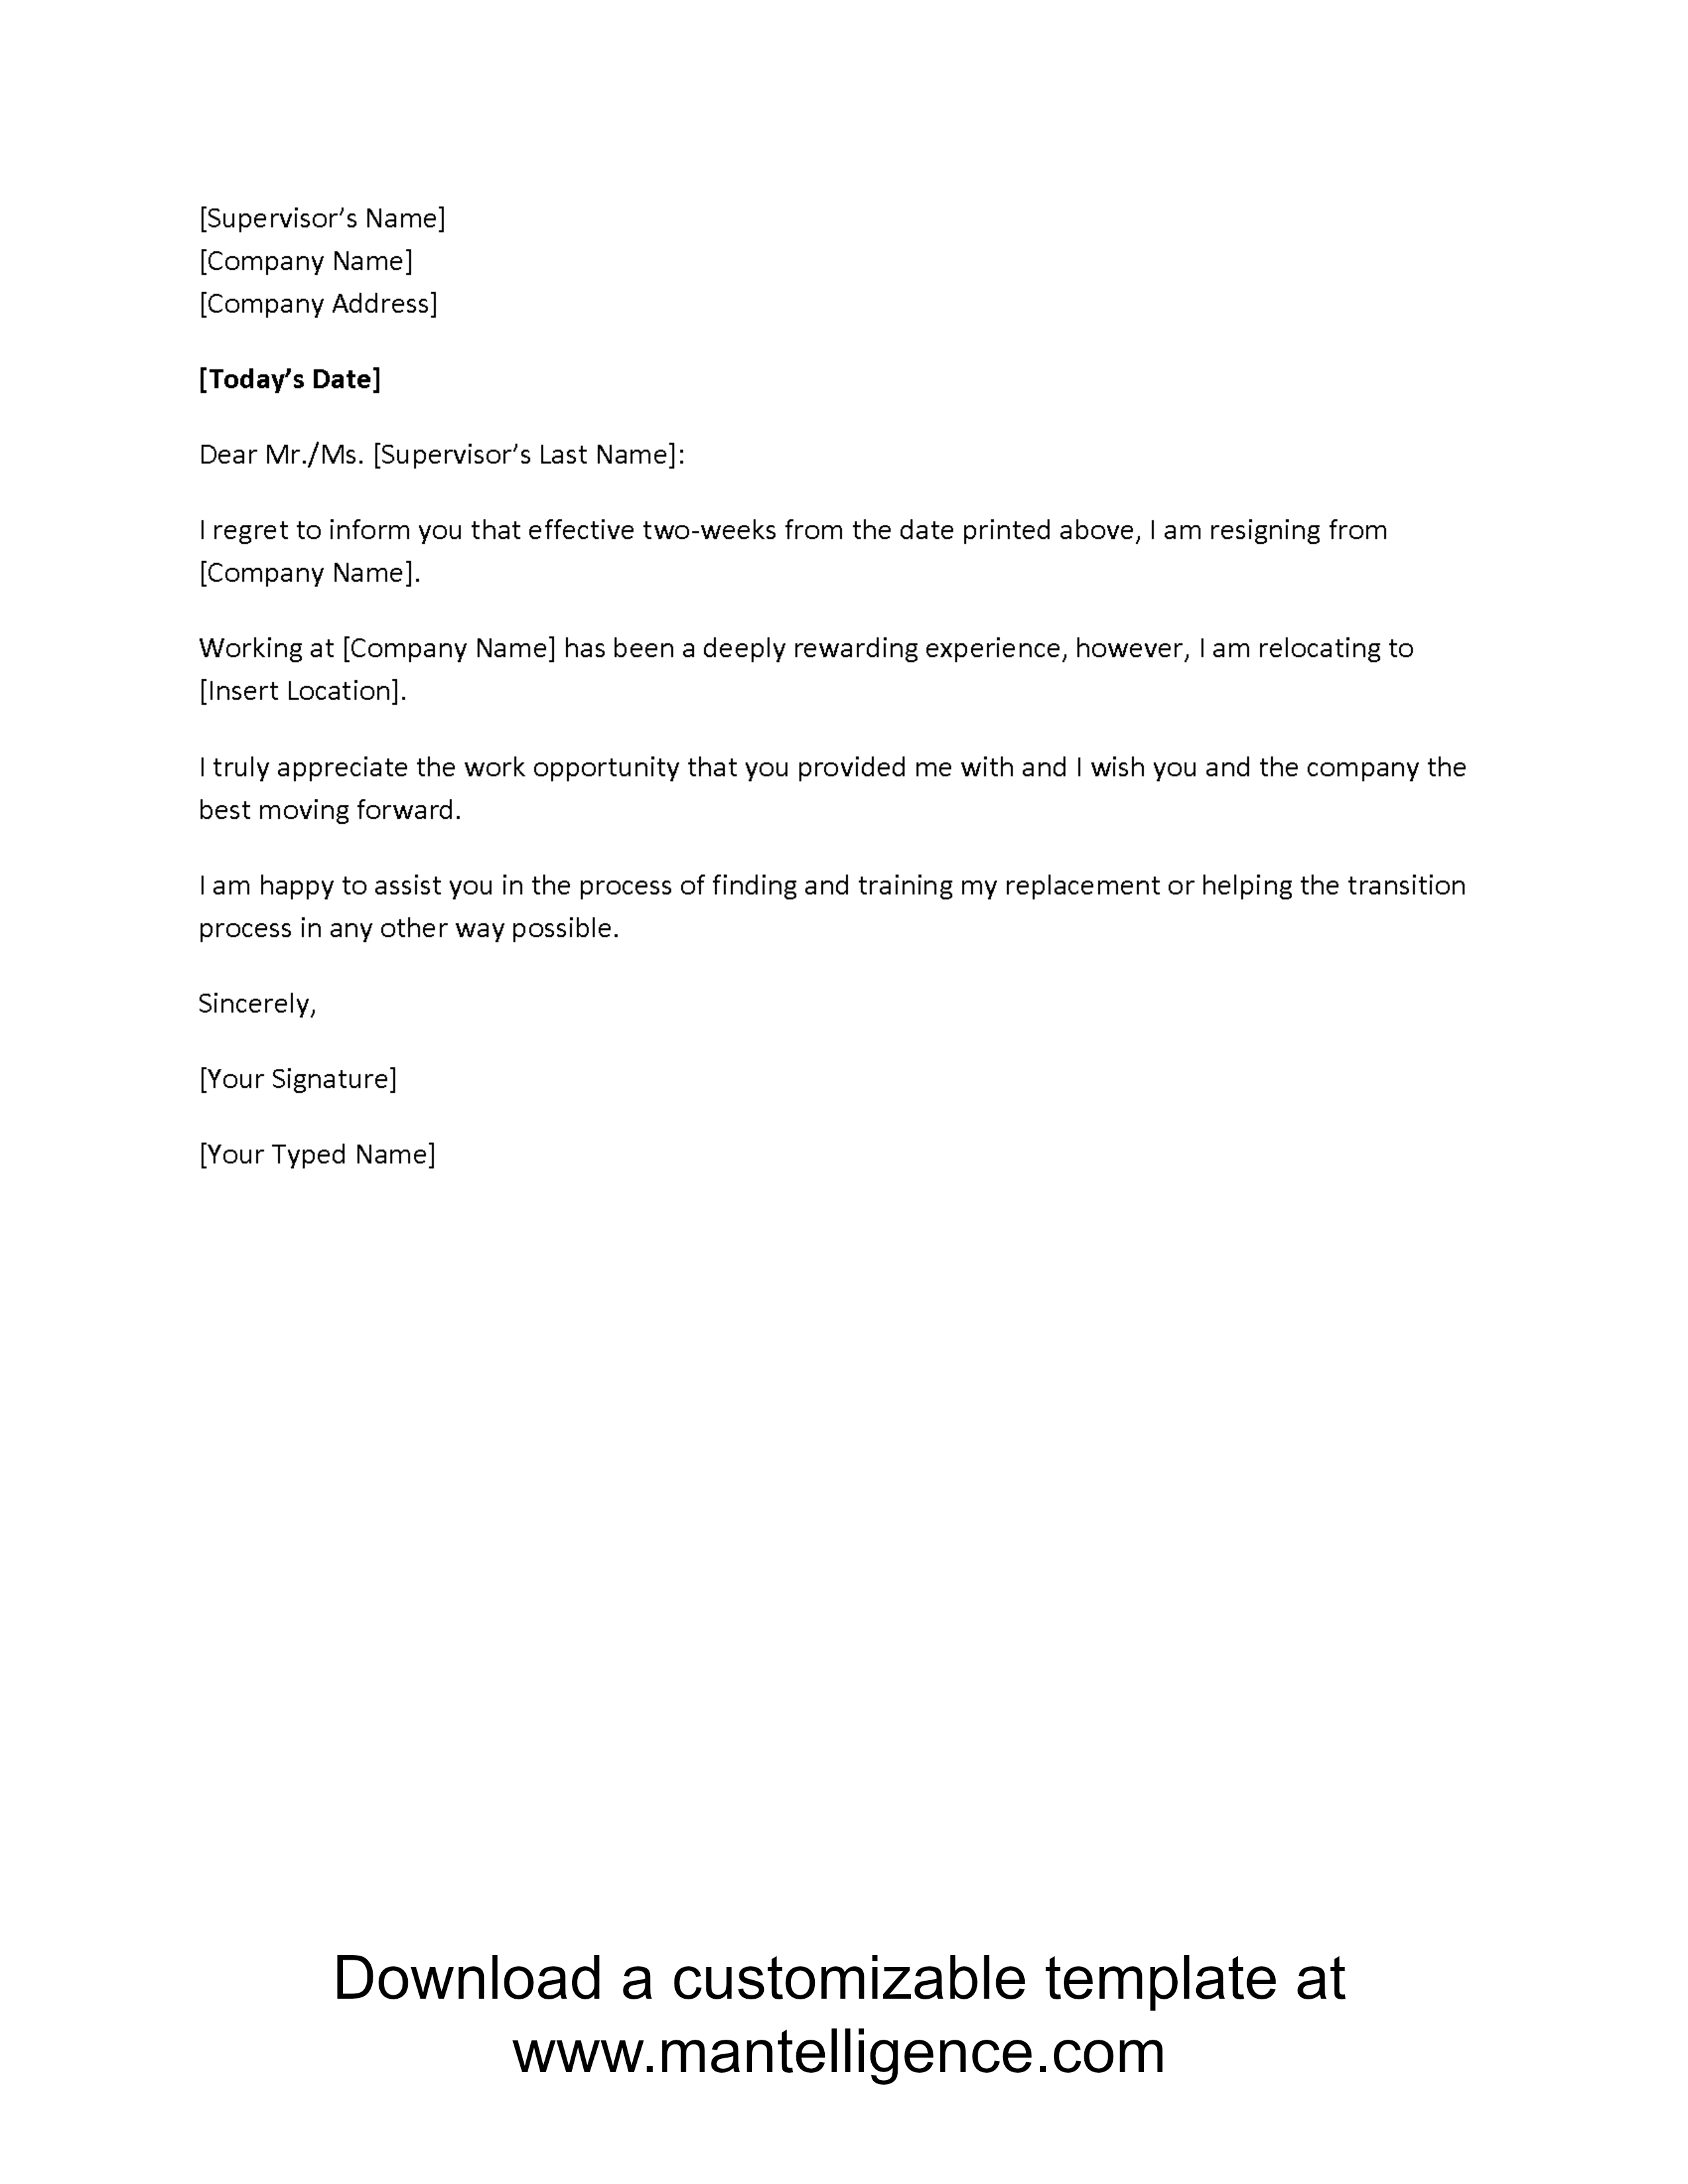 3 highly professional two weeks notice letter templates bye